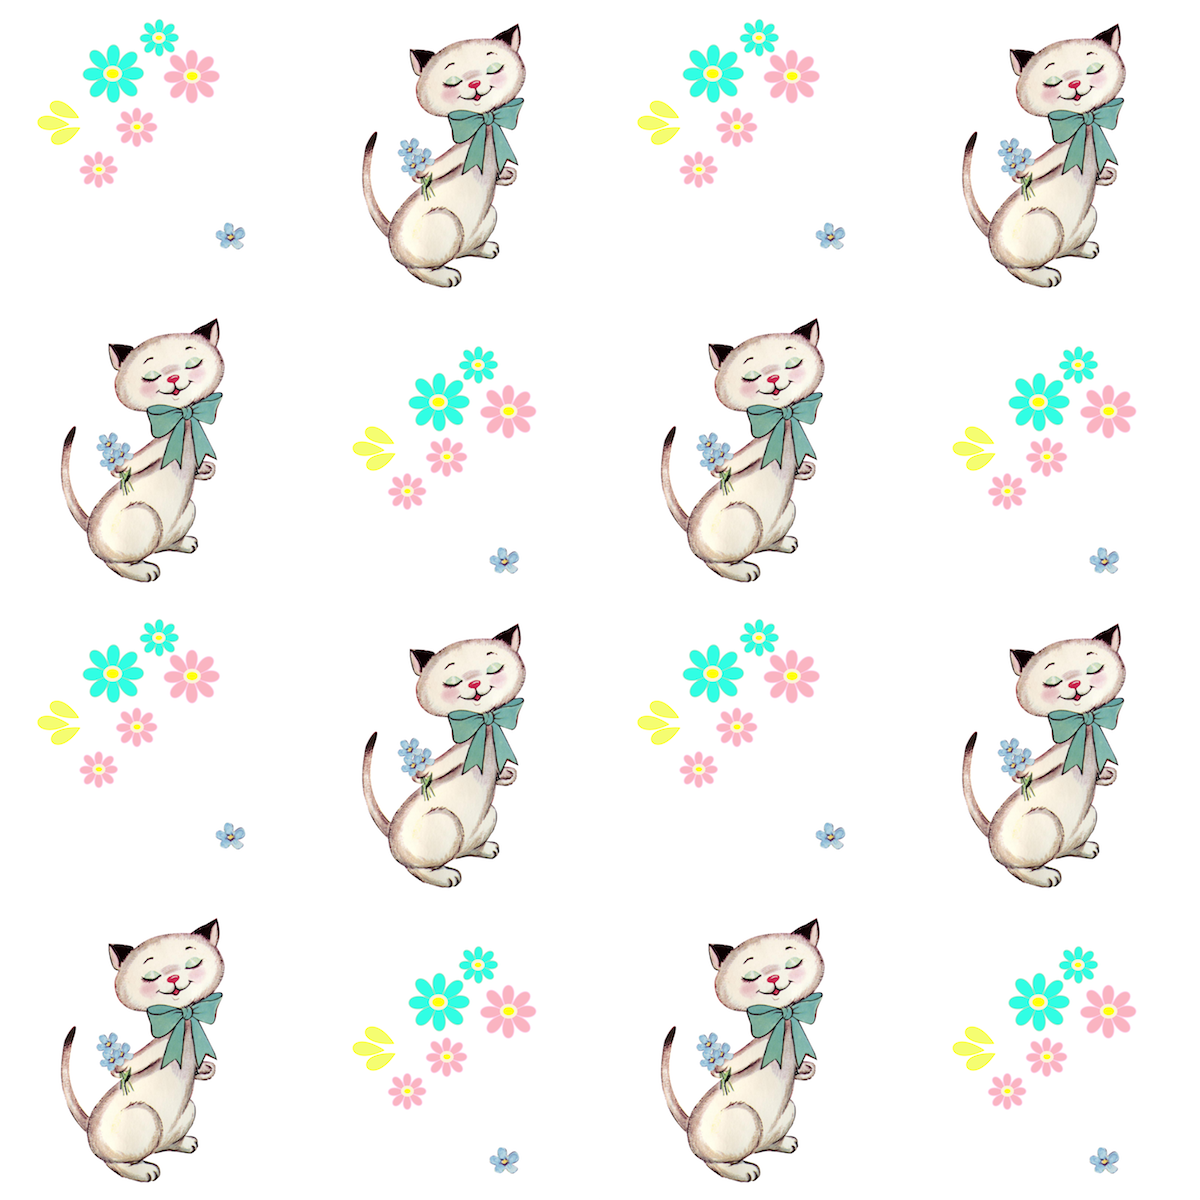 cat wrapping paper Crazy cat lady wrapping paper this is the purr-fect paper to wrap a gift for the crazy cat lady in your life 2 cm) sheets of quality wrapping paper.